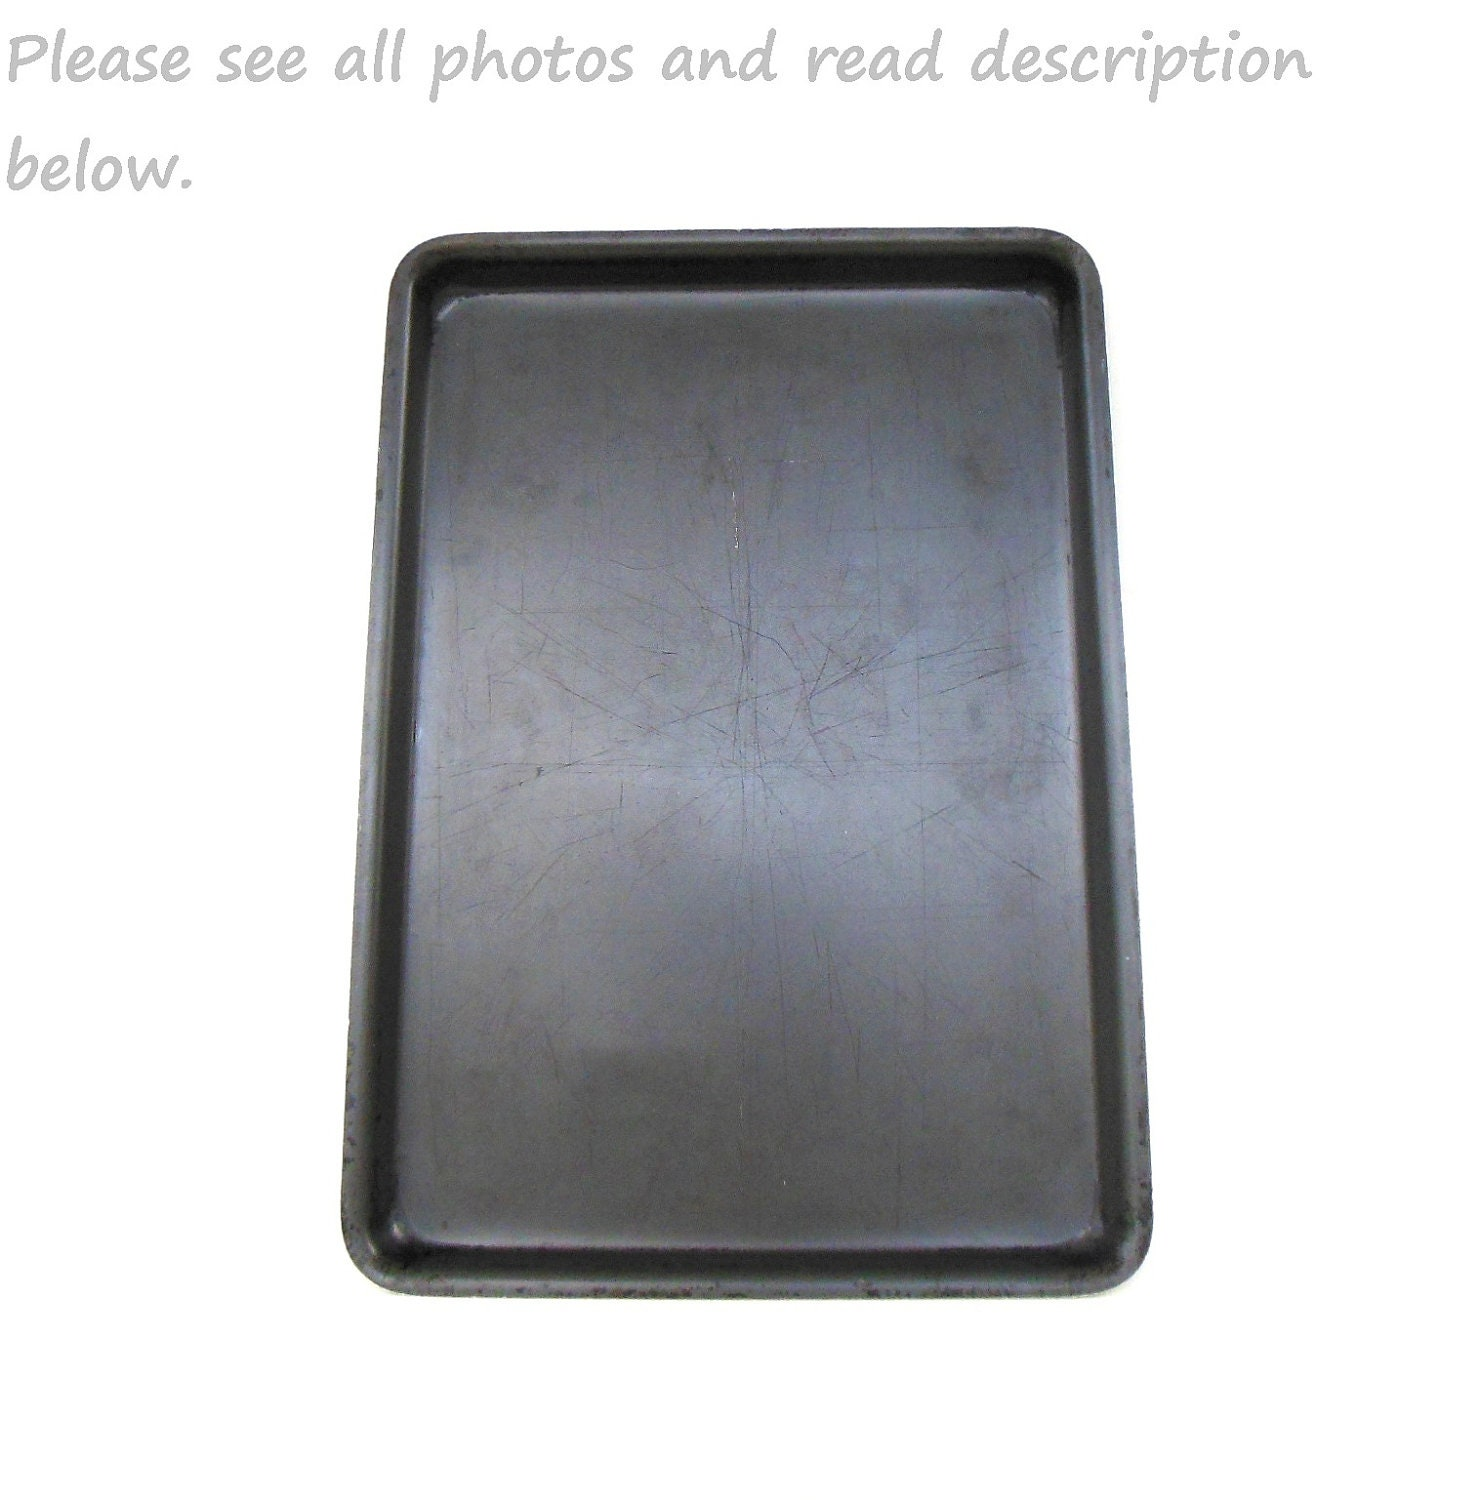 Miracle Maid Cookie Sheet Baking Tray Anodized Aluminum